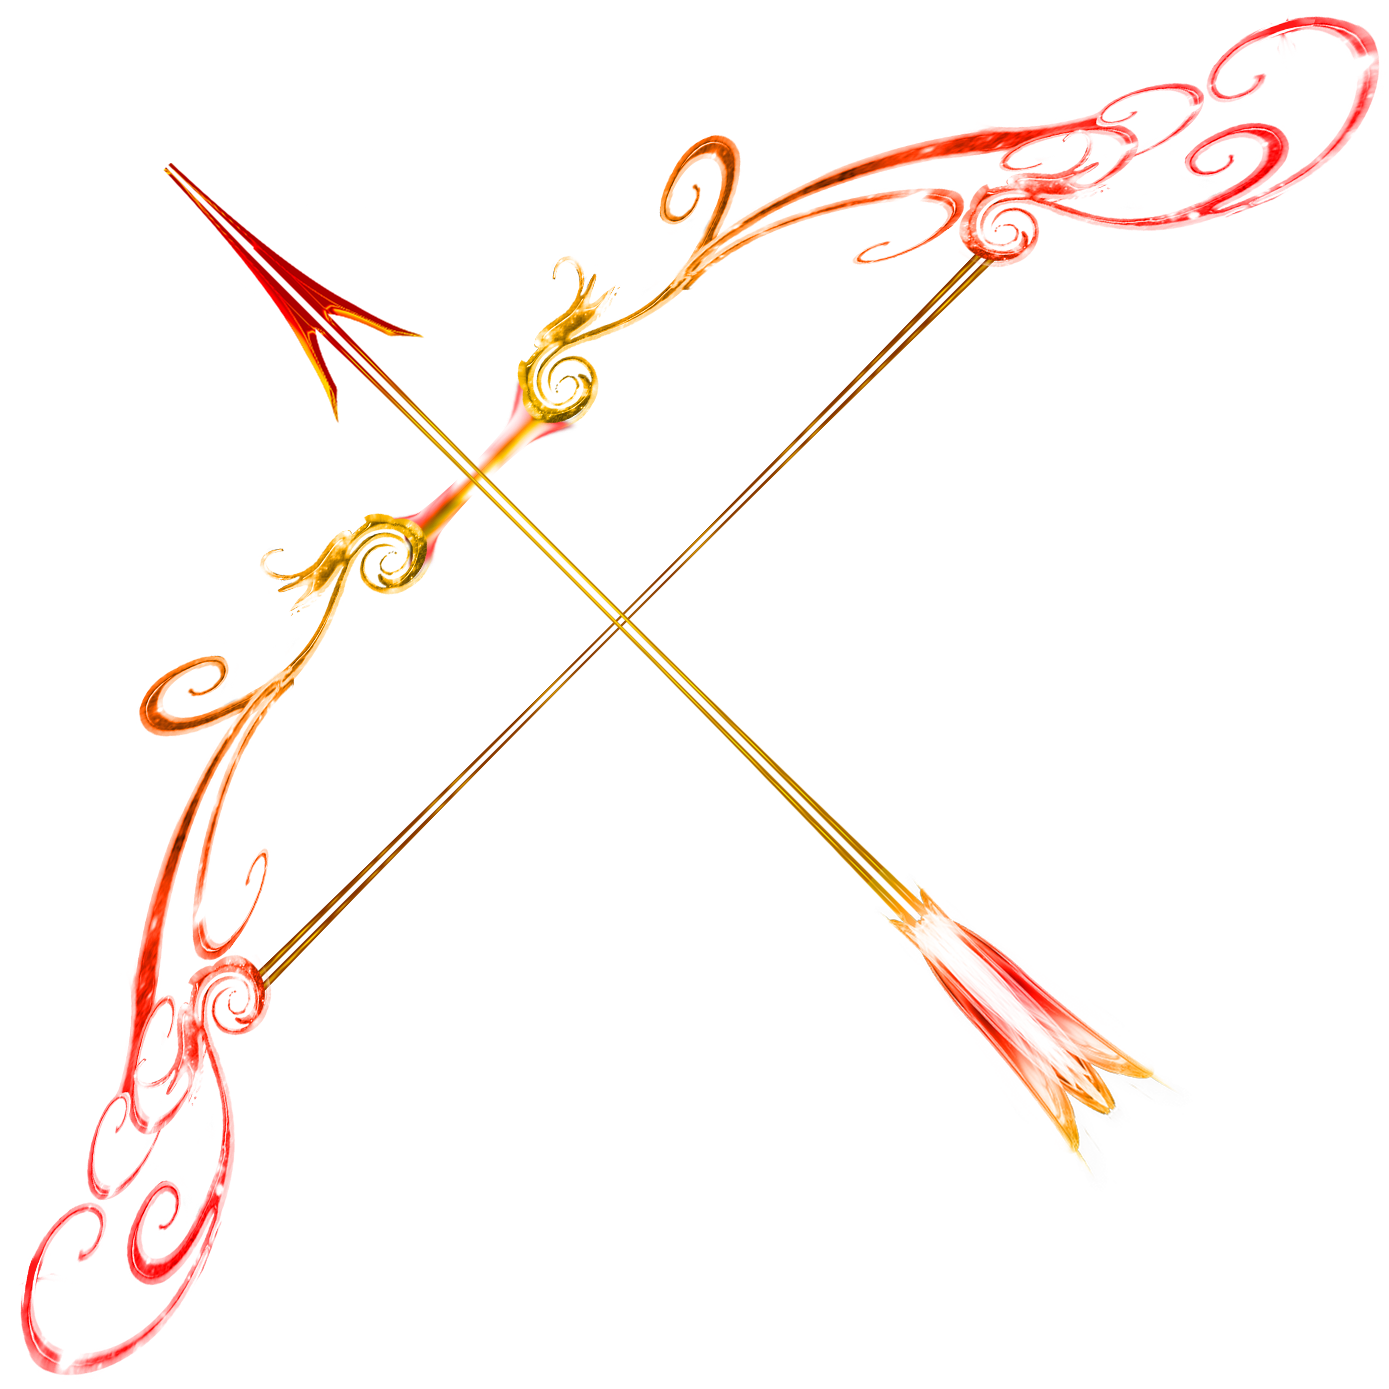 Bow pixelweapon cliparts vector transparent stock Bow Arrow - Clip Art Library vector transparent stock